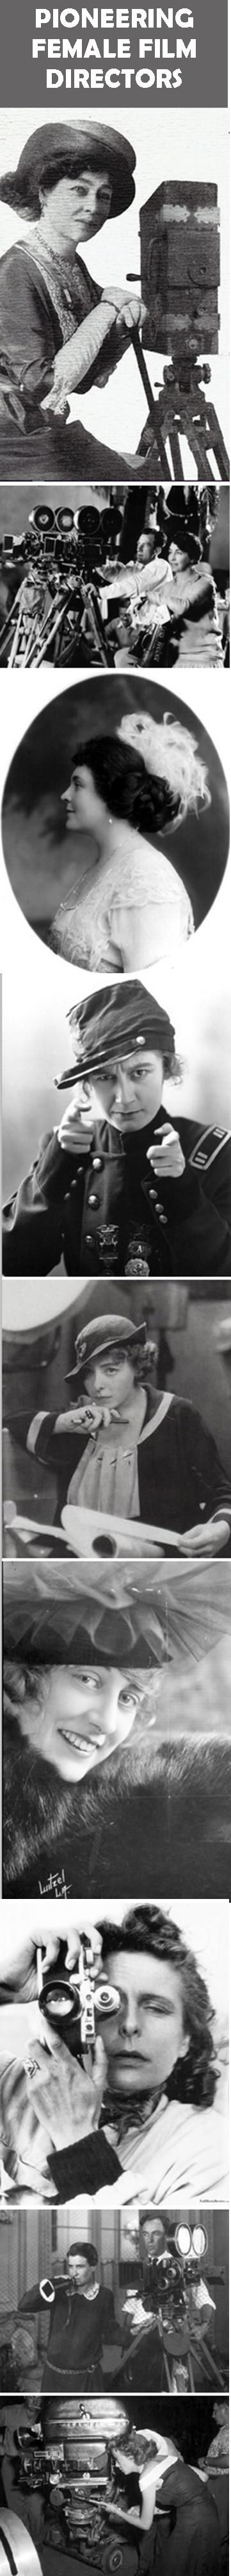 A sadly short list...most of these directors were also actresses: Alice Guy-Blache, Lois Weber, Paula Blackton, Ruth Stonehouse, Dorothy Davenport, Grace Cunard, Leni Riefenstahl, Dorothy Arzner and Ida Lupino. #women #film